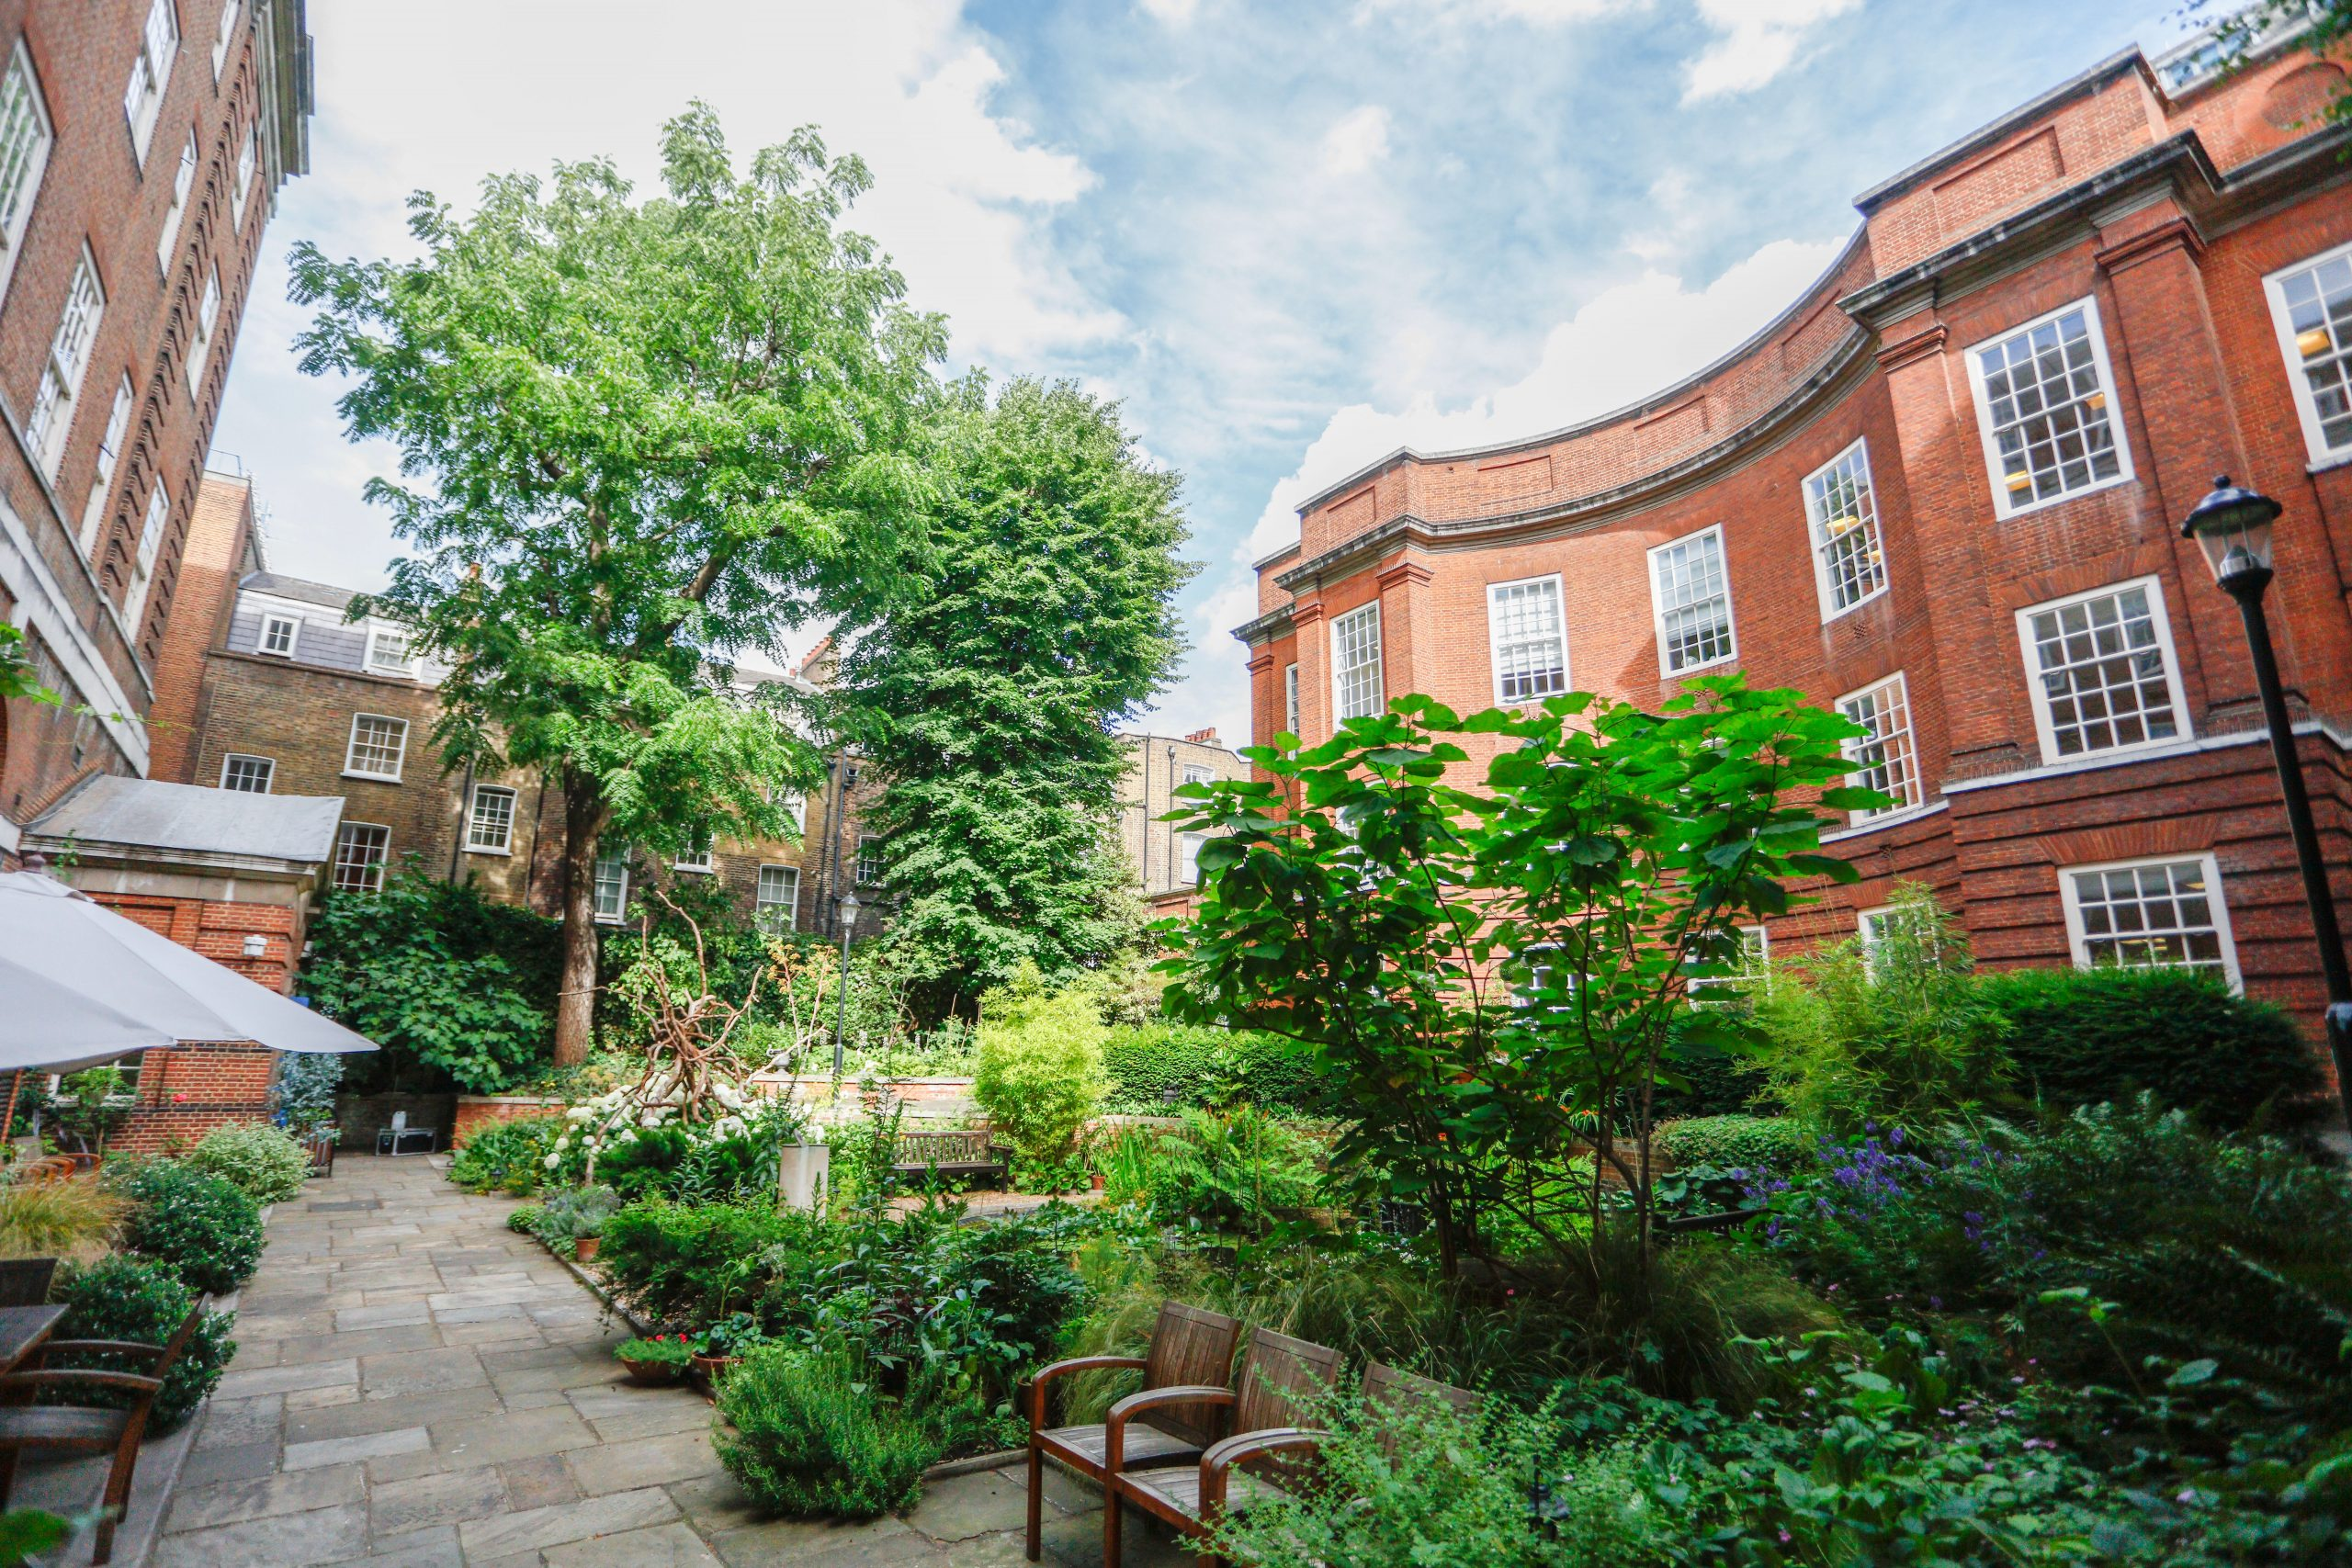 Sustainable venues London: Eco-friendly events at BMA House